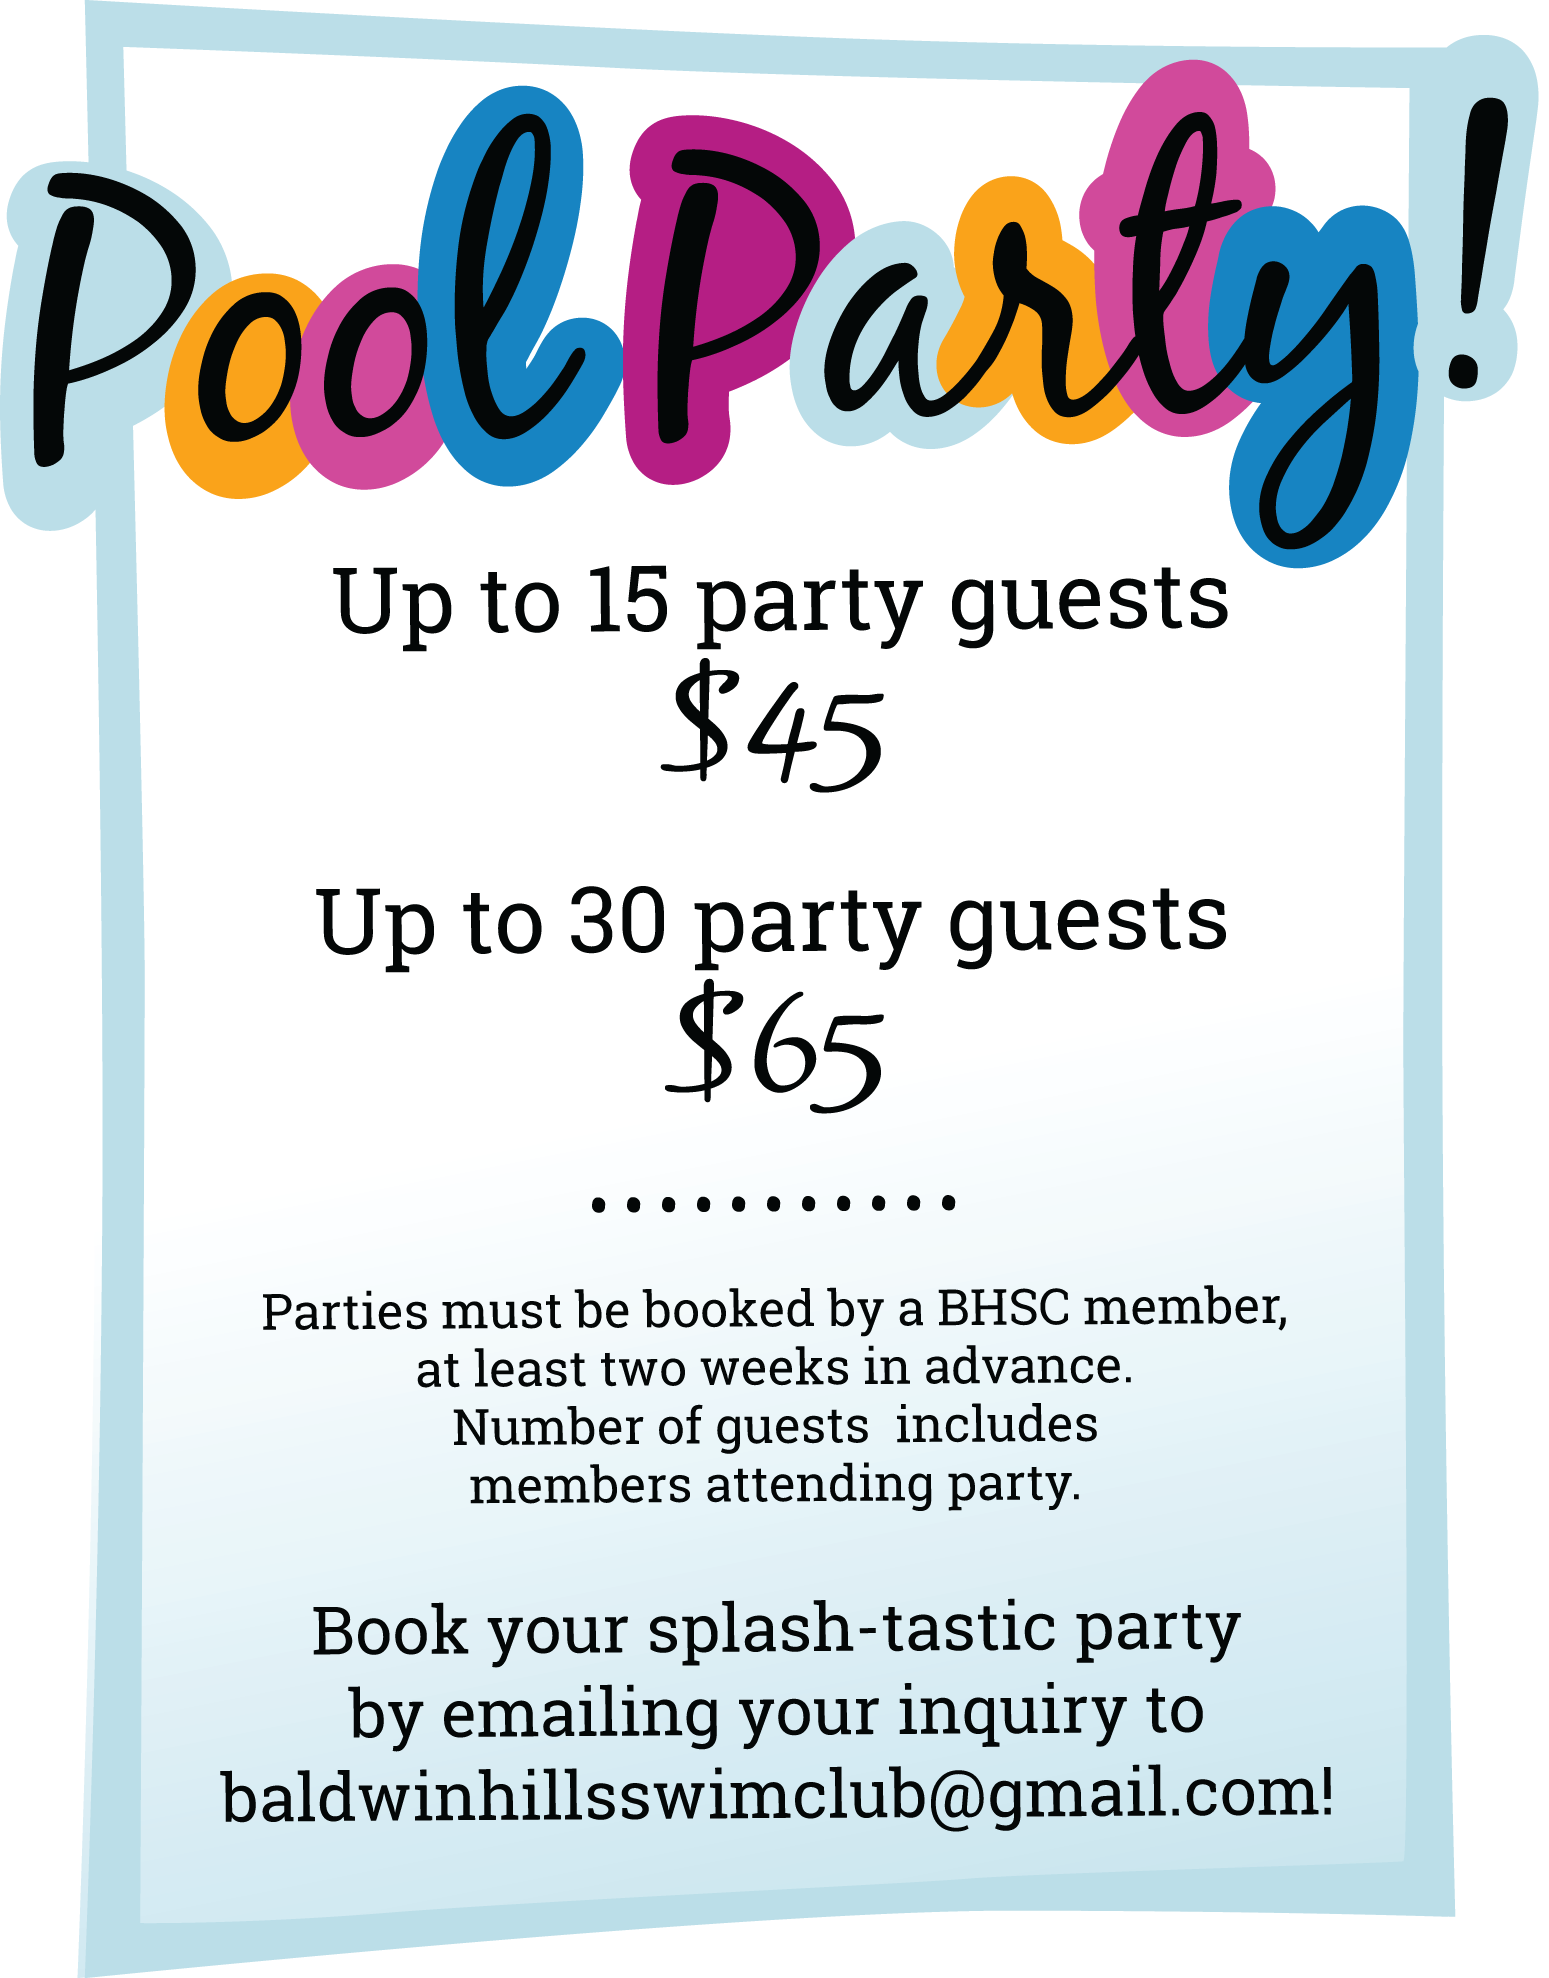 PoolPartyInfo